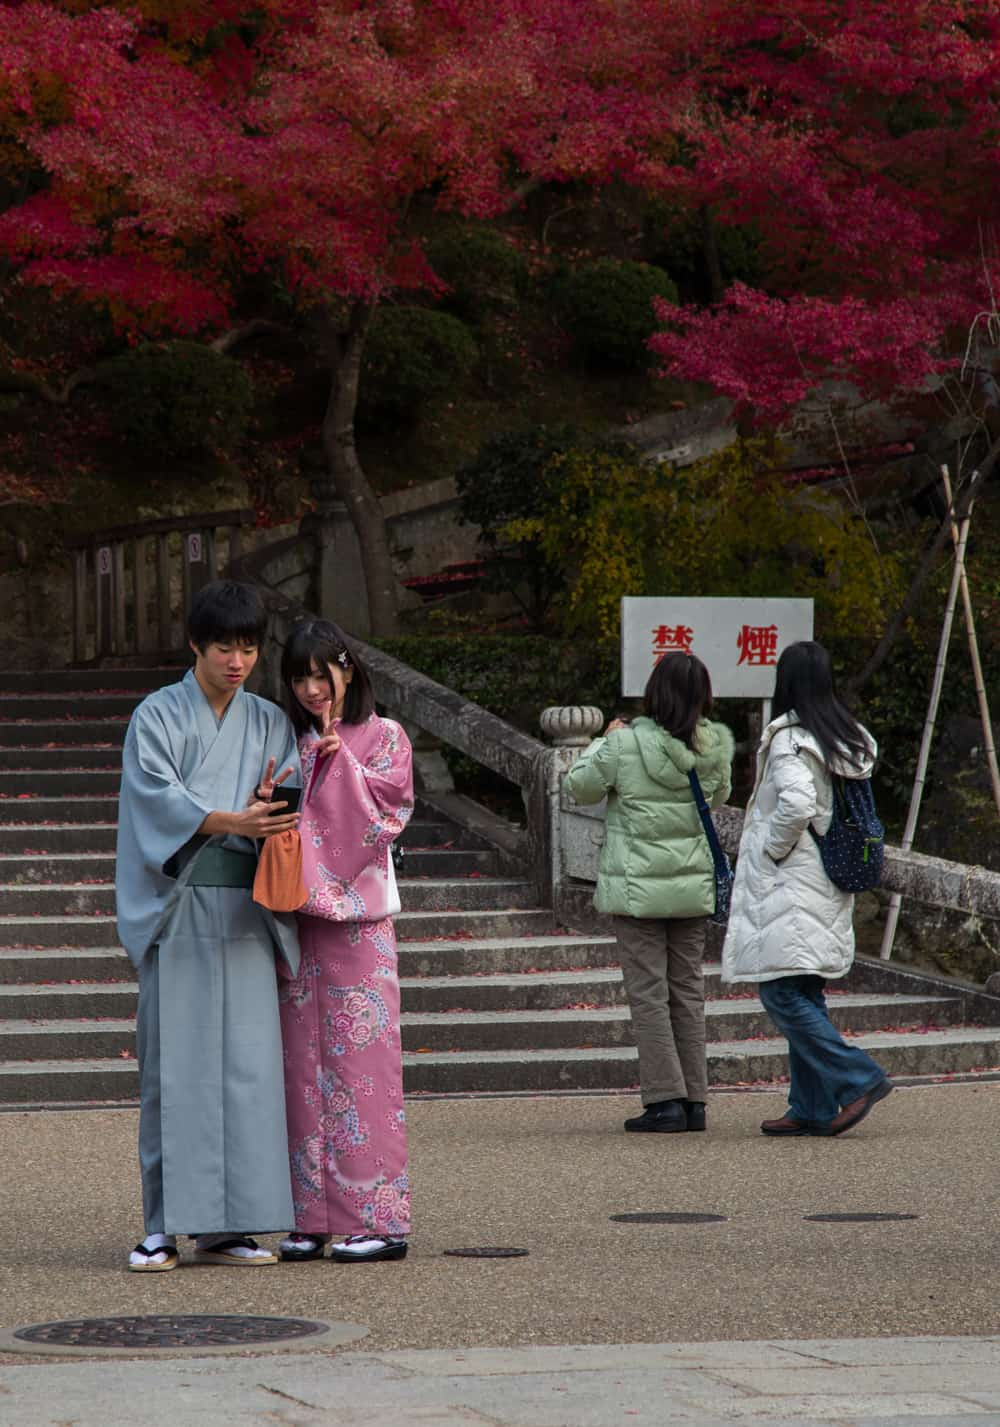 Wearing a Kimono in Kyoto: Couple in Kimonos at a Temple in Kyoto